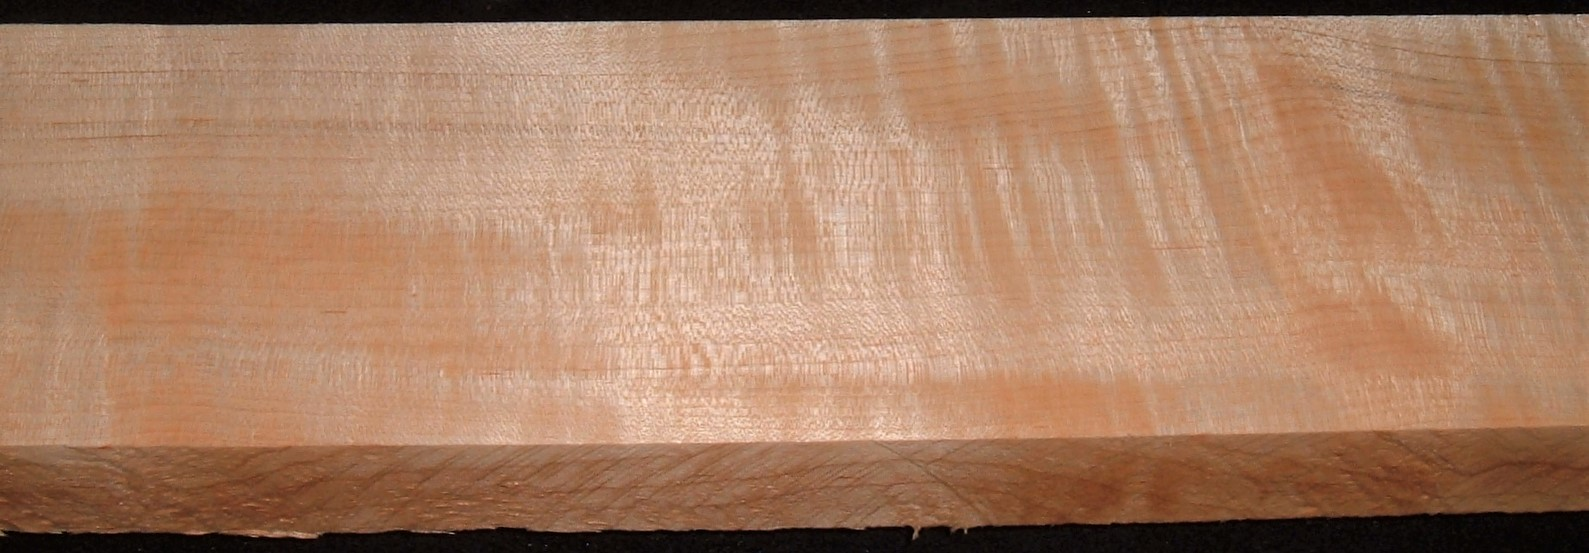 QS2104-57JK, 1-3/16x3-7/8x47, Quartersawn Curly Maple